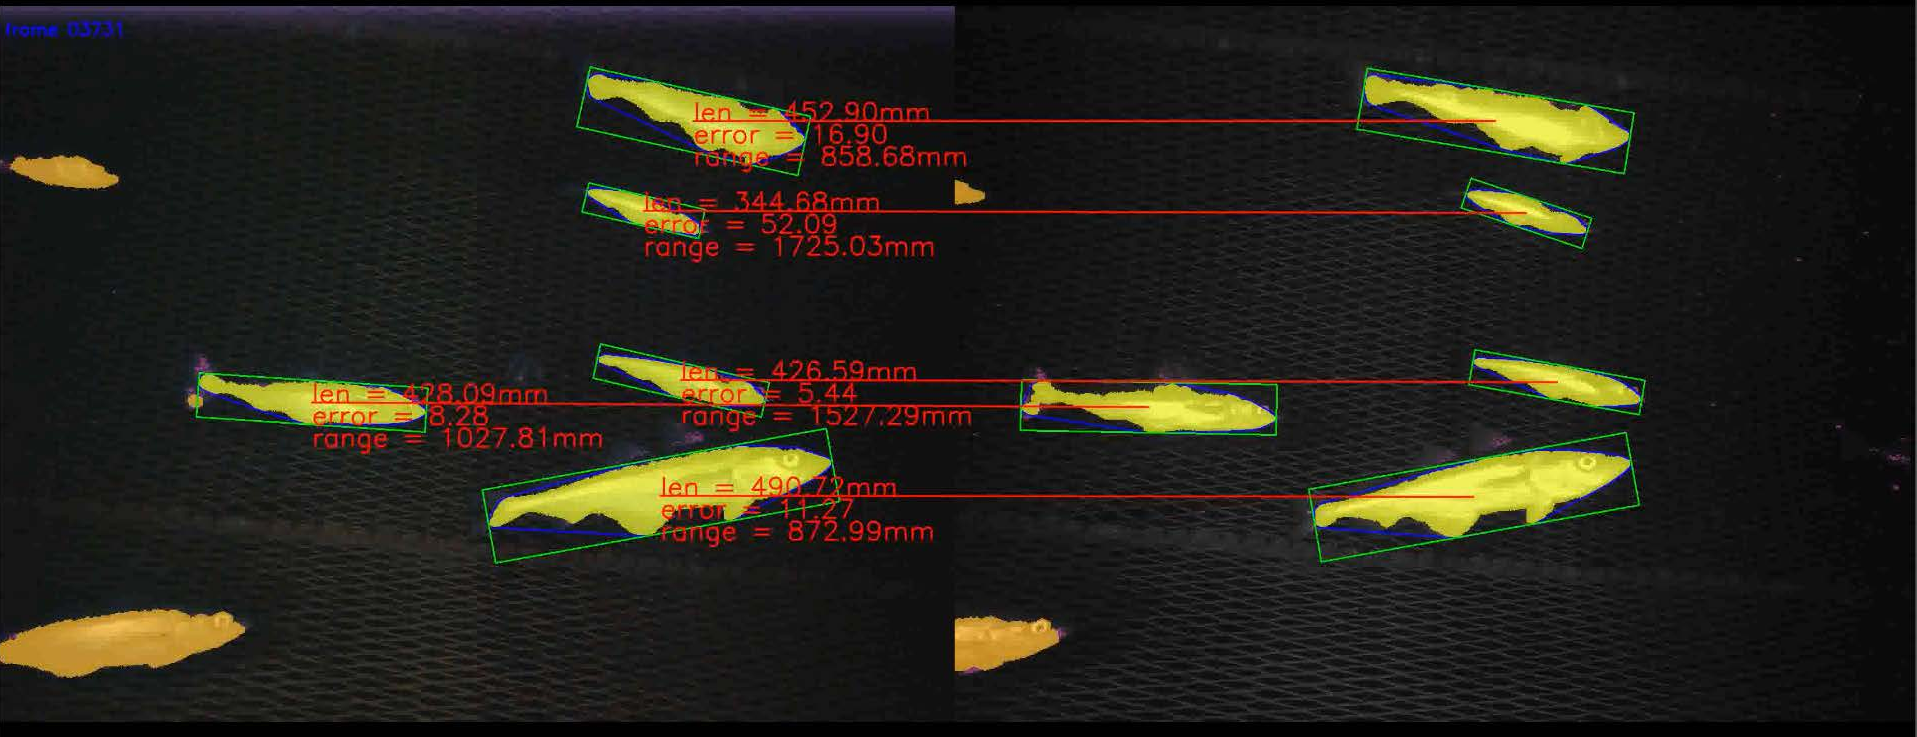 http://www.viametoolkit.org/wp-content/uploads/2018/02/fish_measurement_example.png